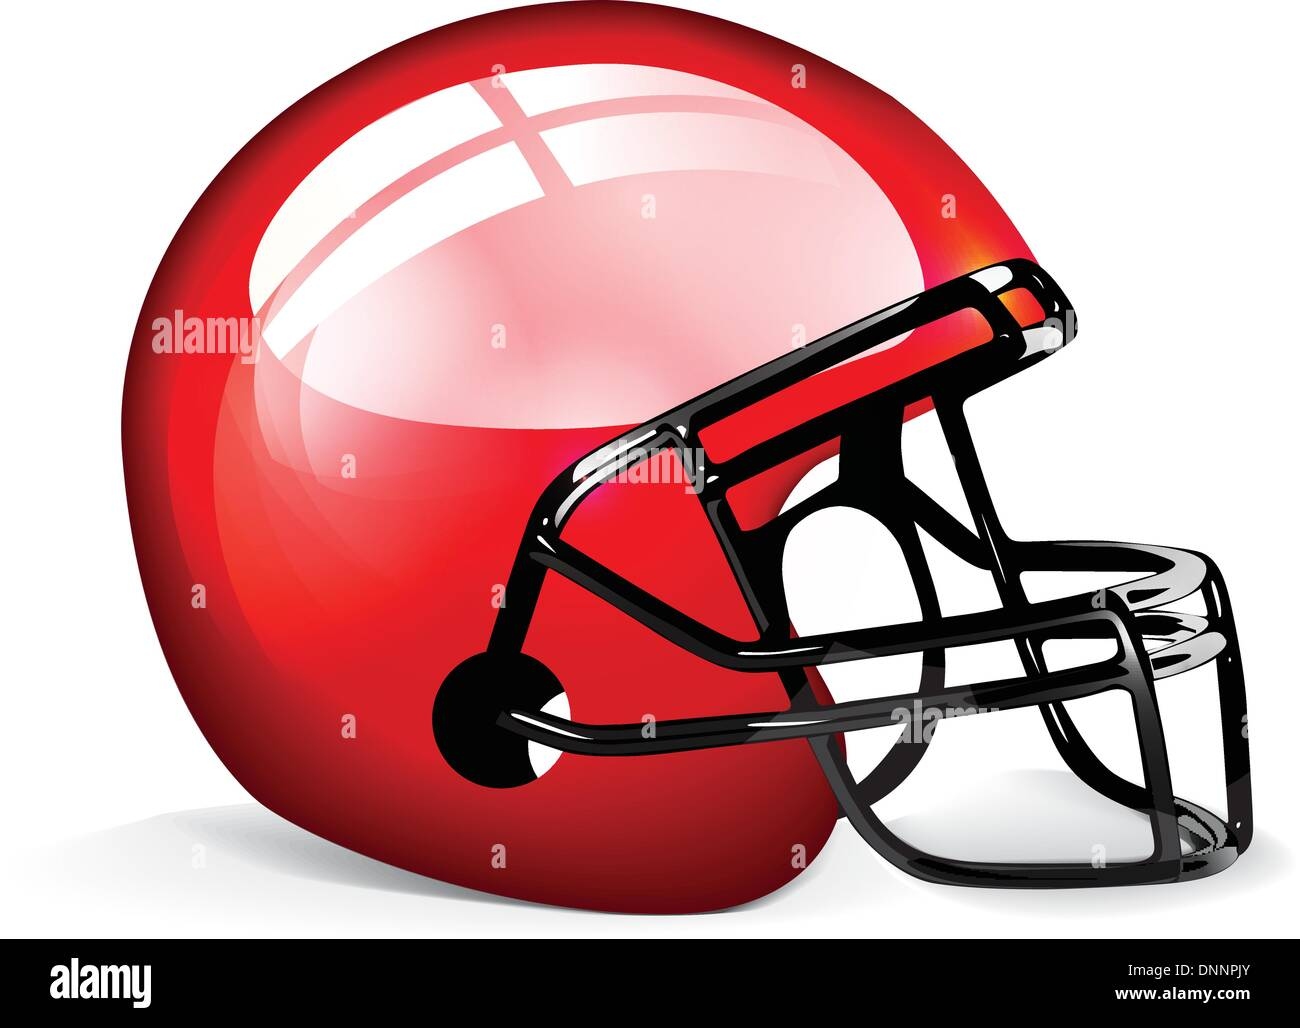 Red football helmet isolated over white background - Stock Image